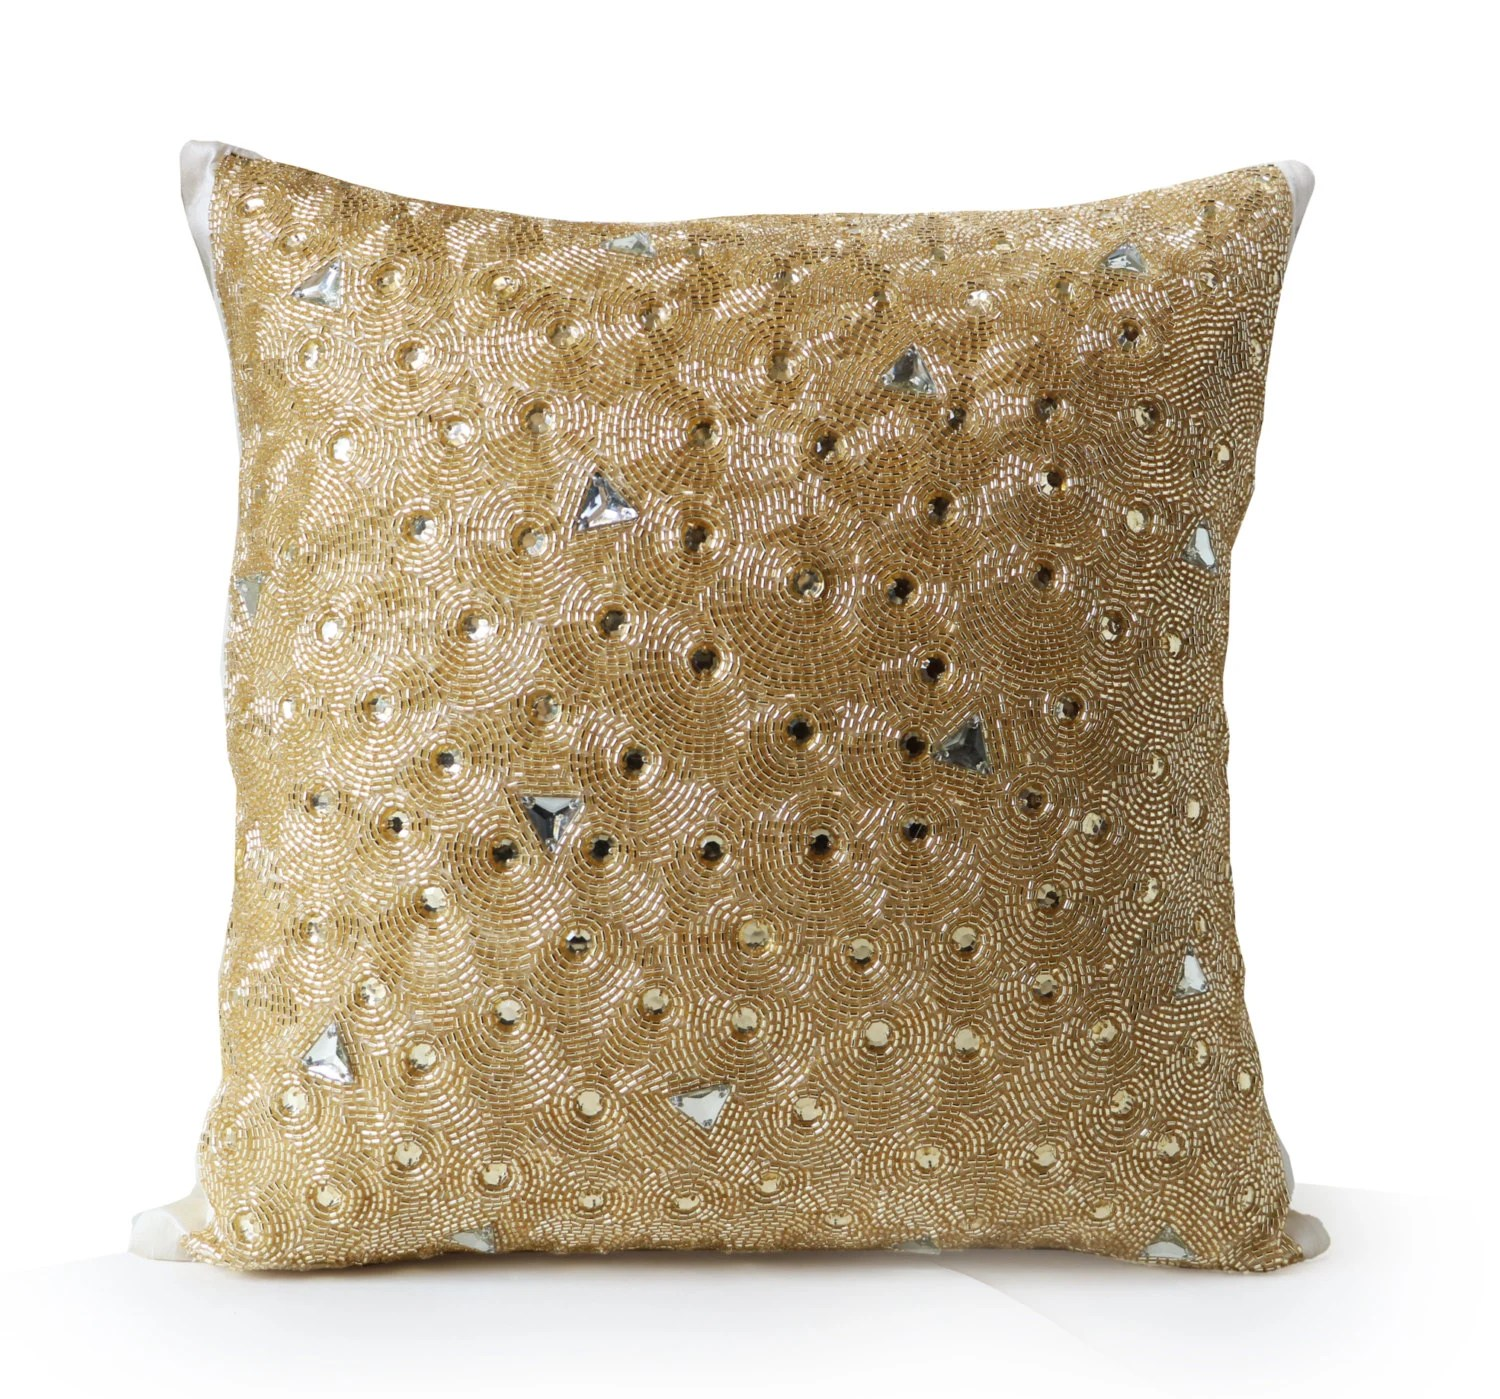 Best Items Similar To Gold Throw Pillow Beaded Pillows This Month